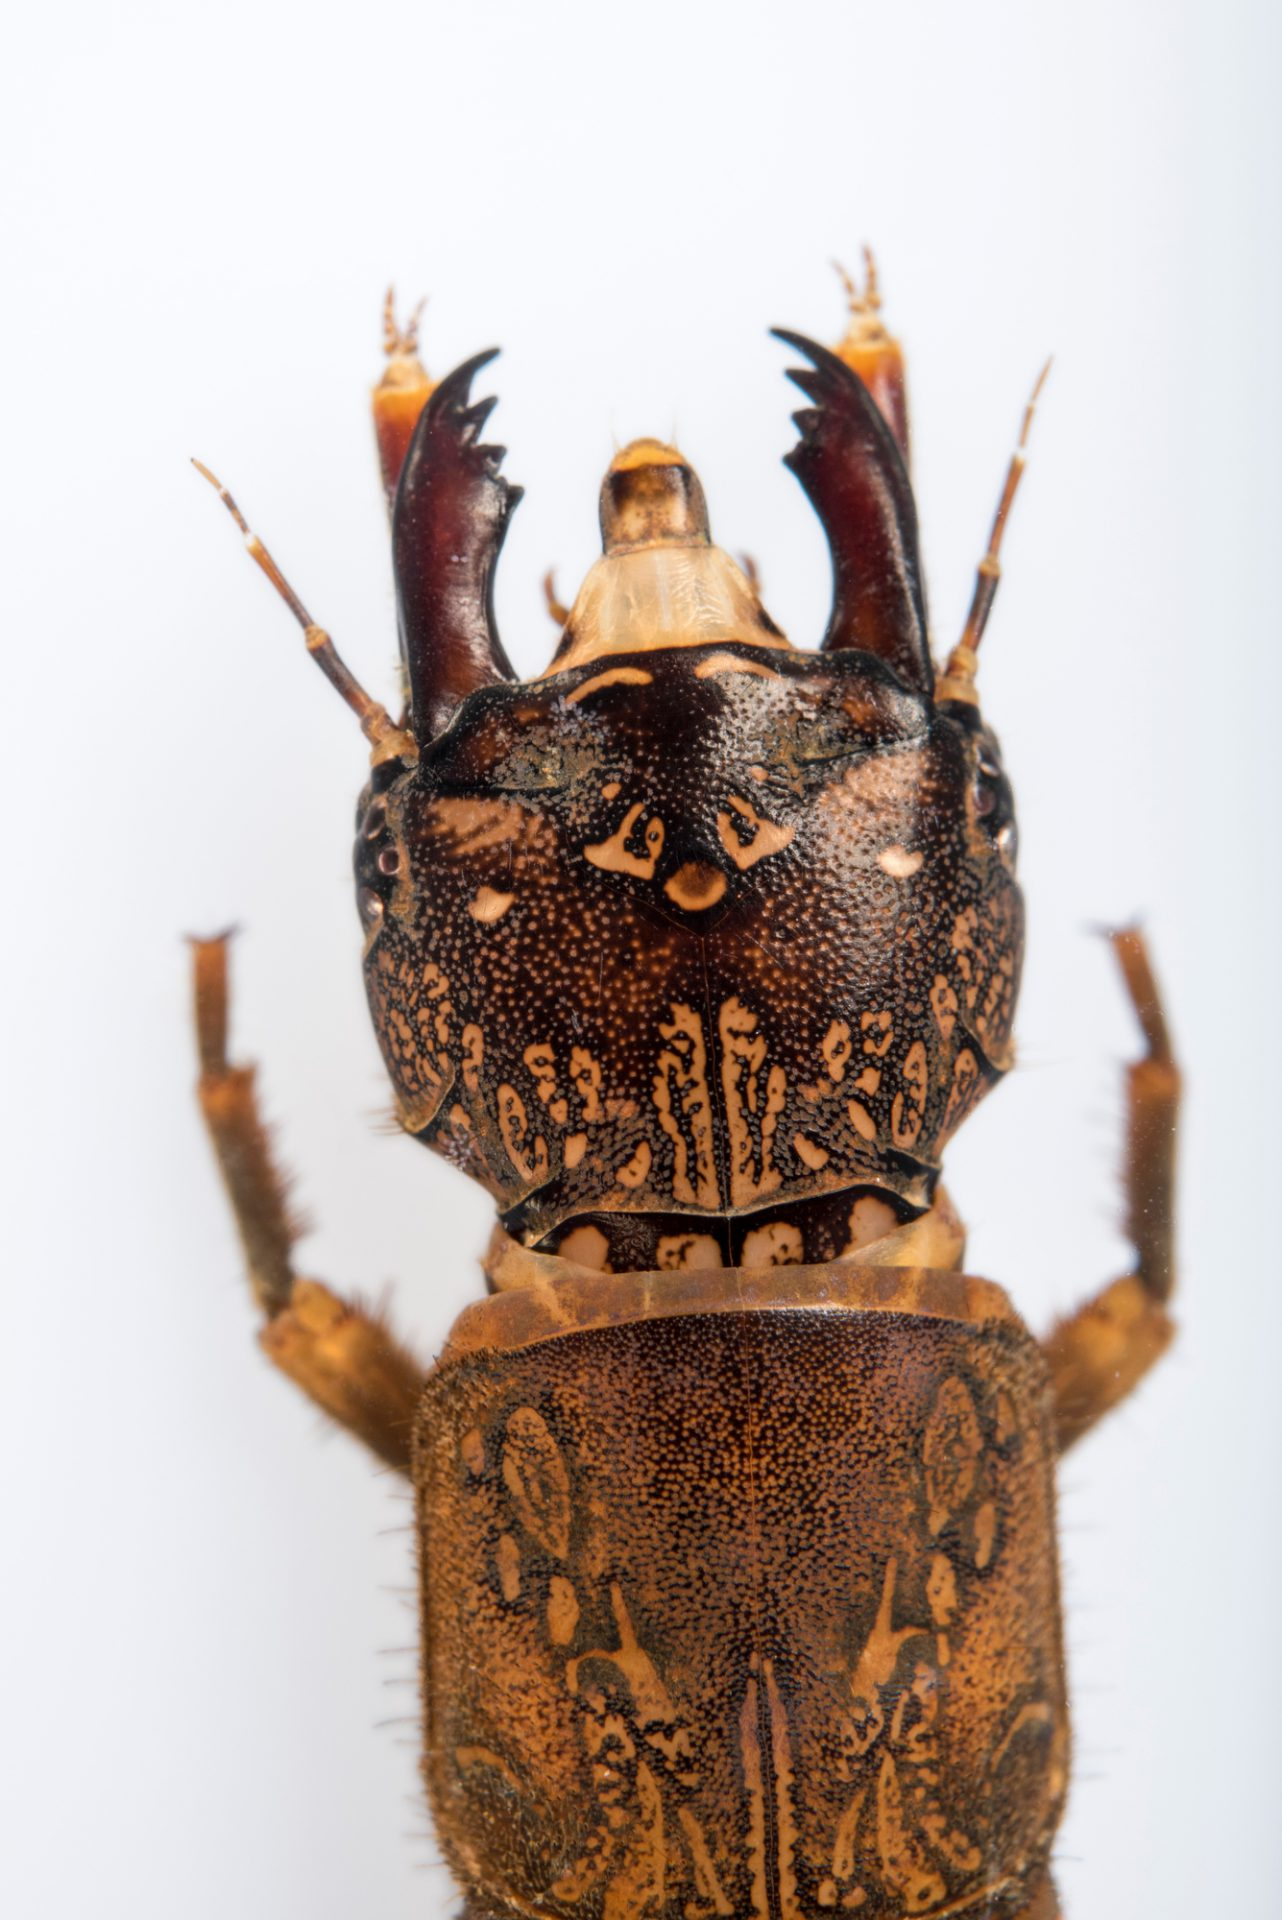 Photo: Larvae of a dobsonfly (Corydalus cornutus) at Conservation Fisheries.